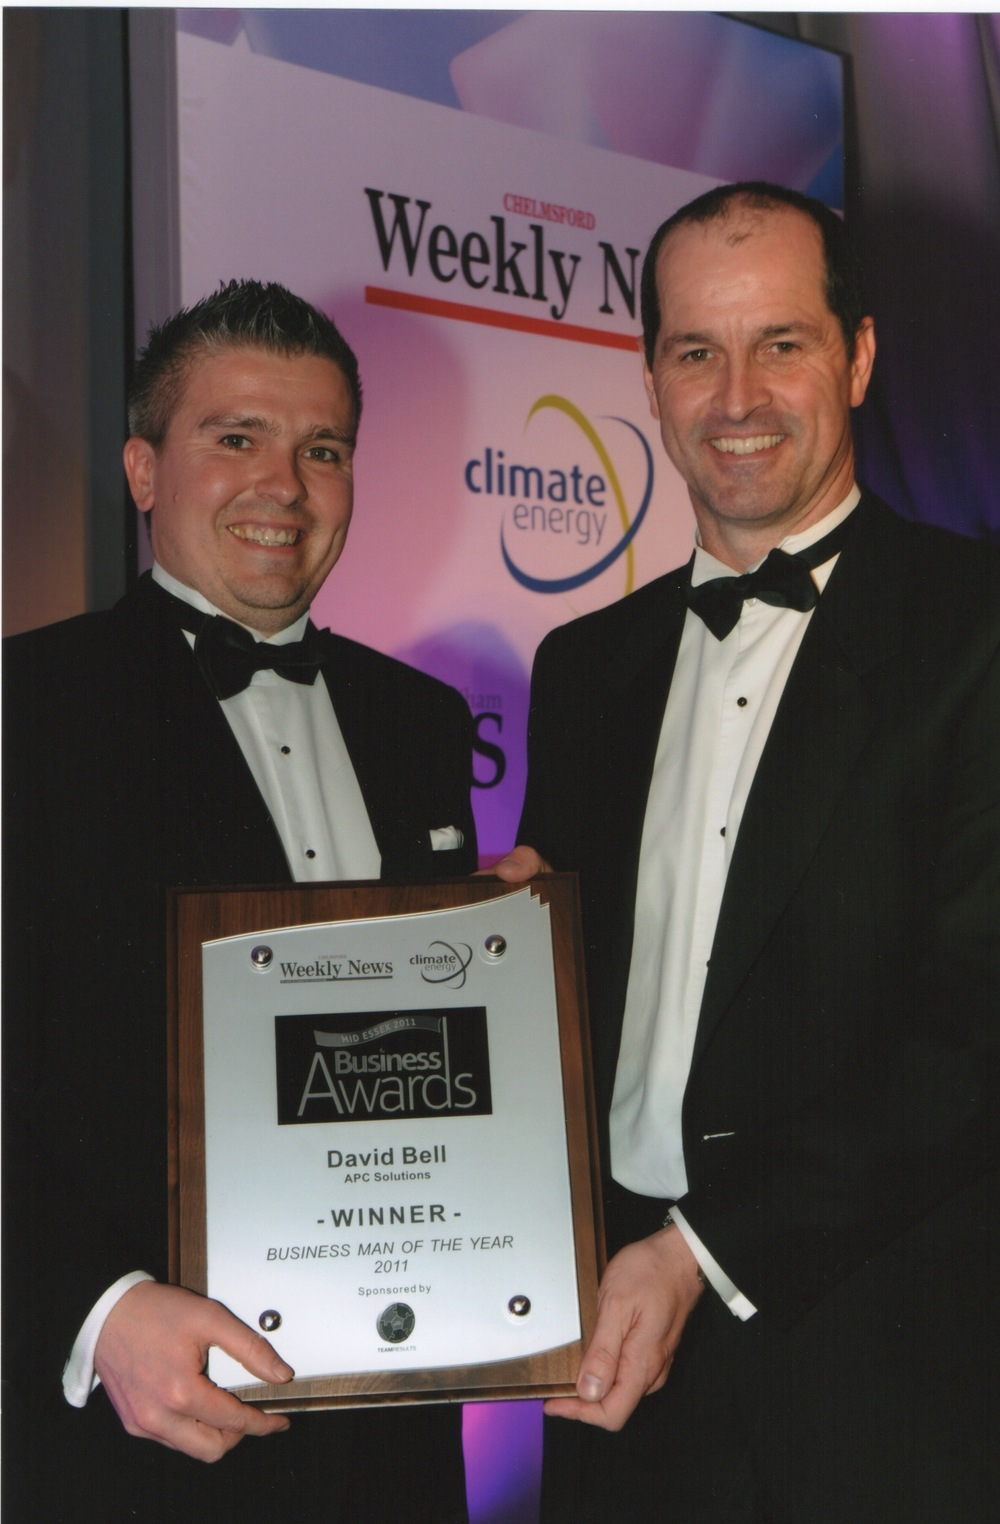 David Bell Winner of Essex Businessman 2011